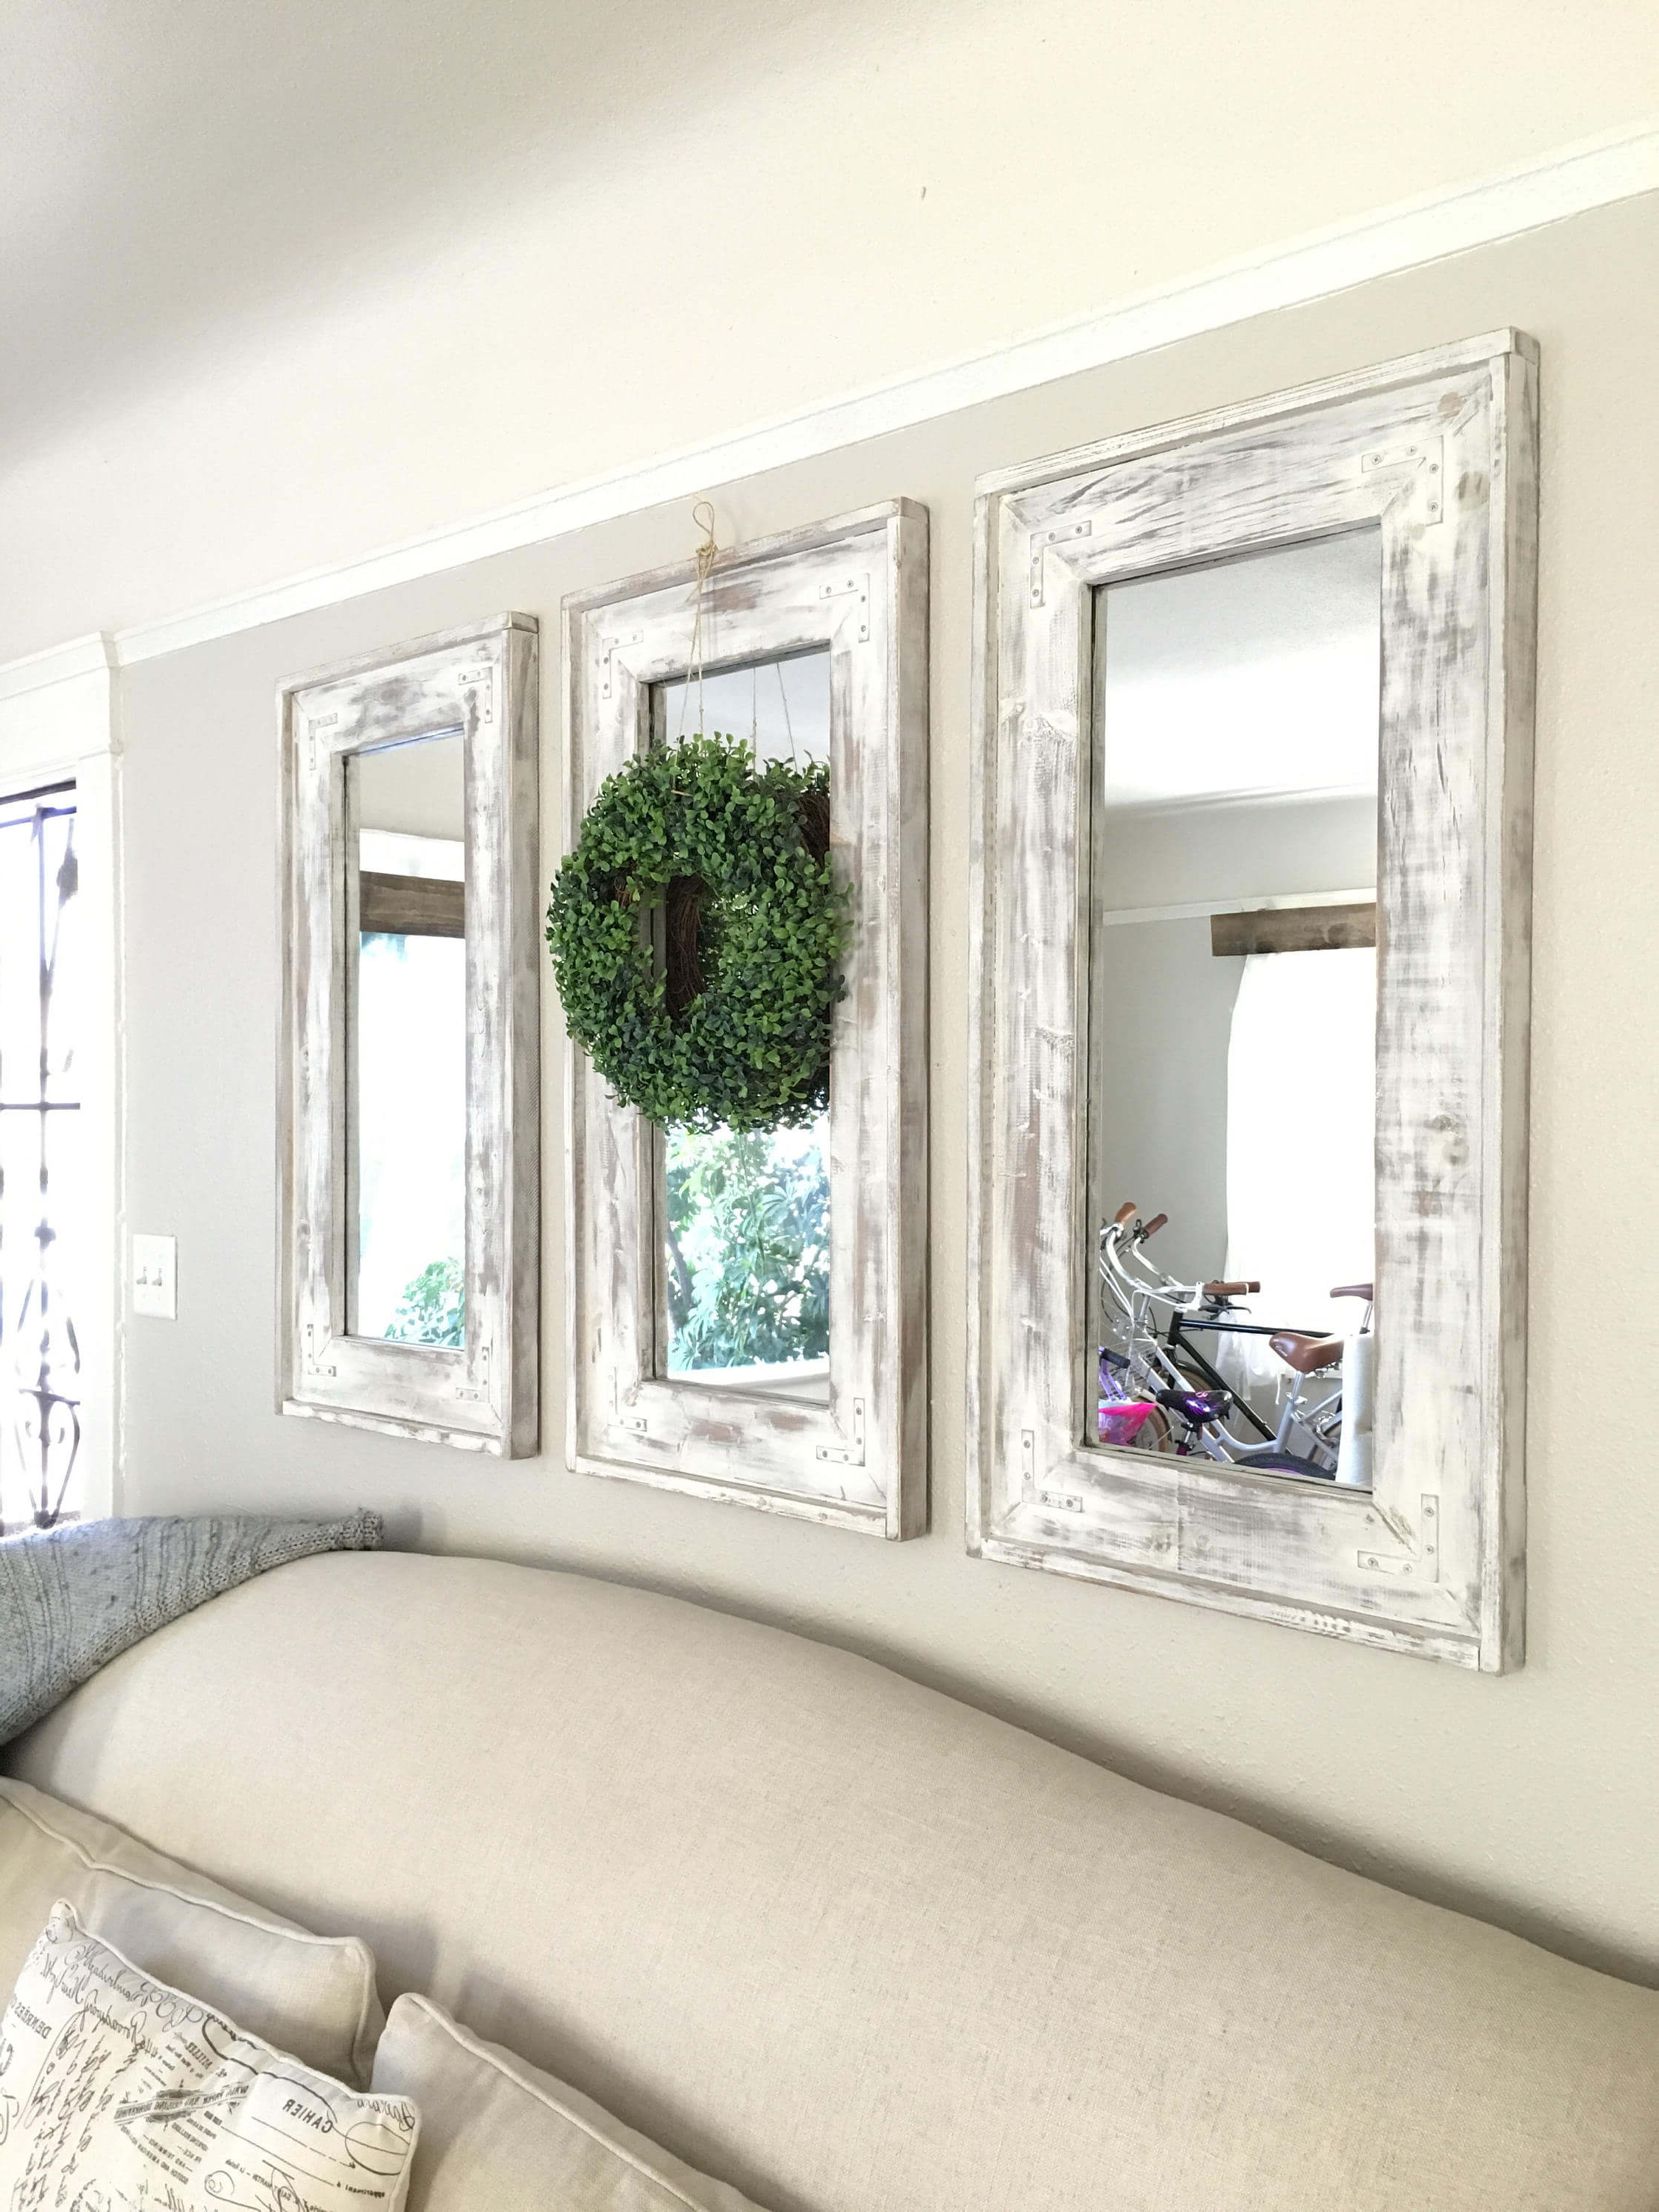 Popular Rustic Wall Mirrors With Regard To Retrofitted Wall Mirrors With Natural Wreath Accent — Homebnc (View 18 of 20)